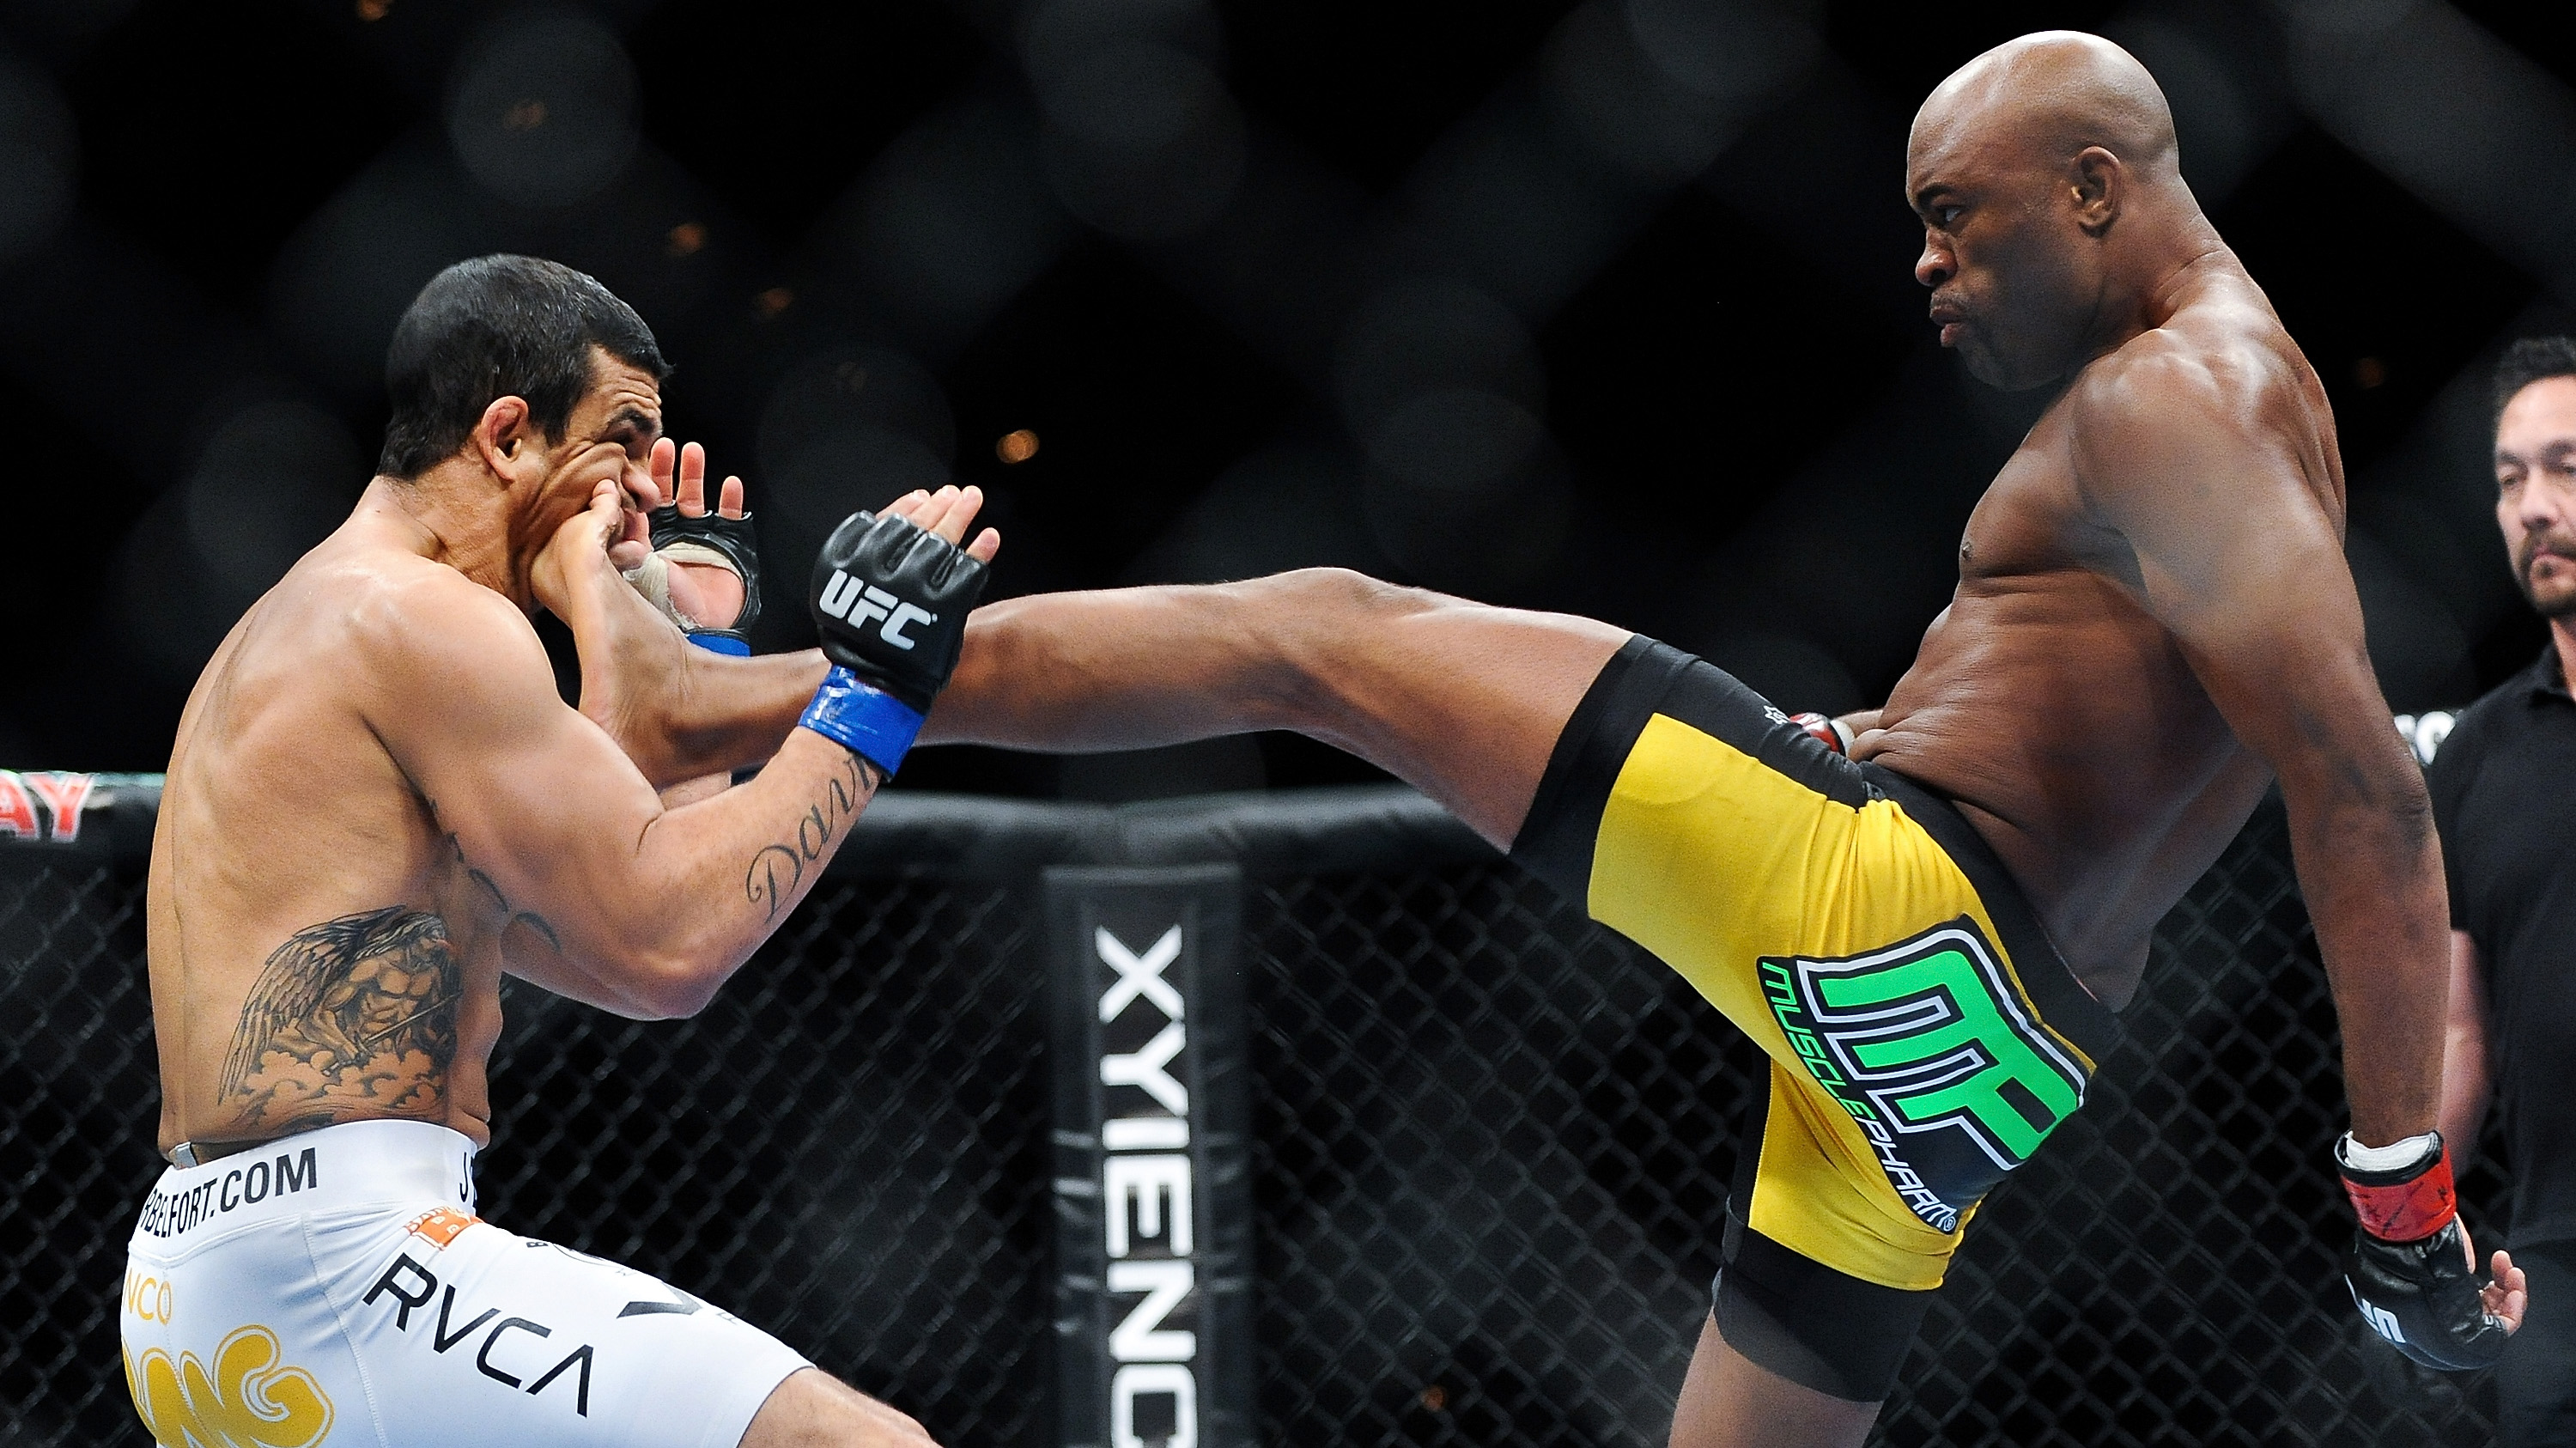 Anderson Silva (Photo by James Law/Zuffa LLC/Zuffa LLC via Getty Images)